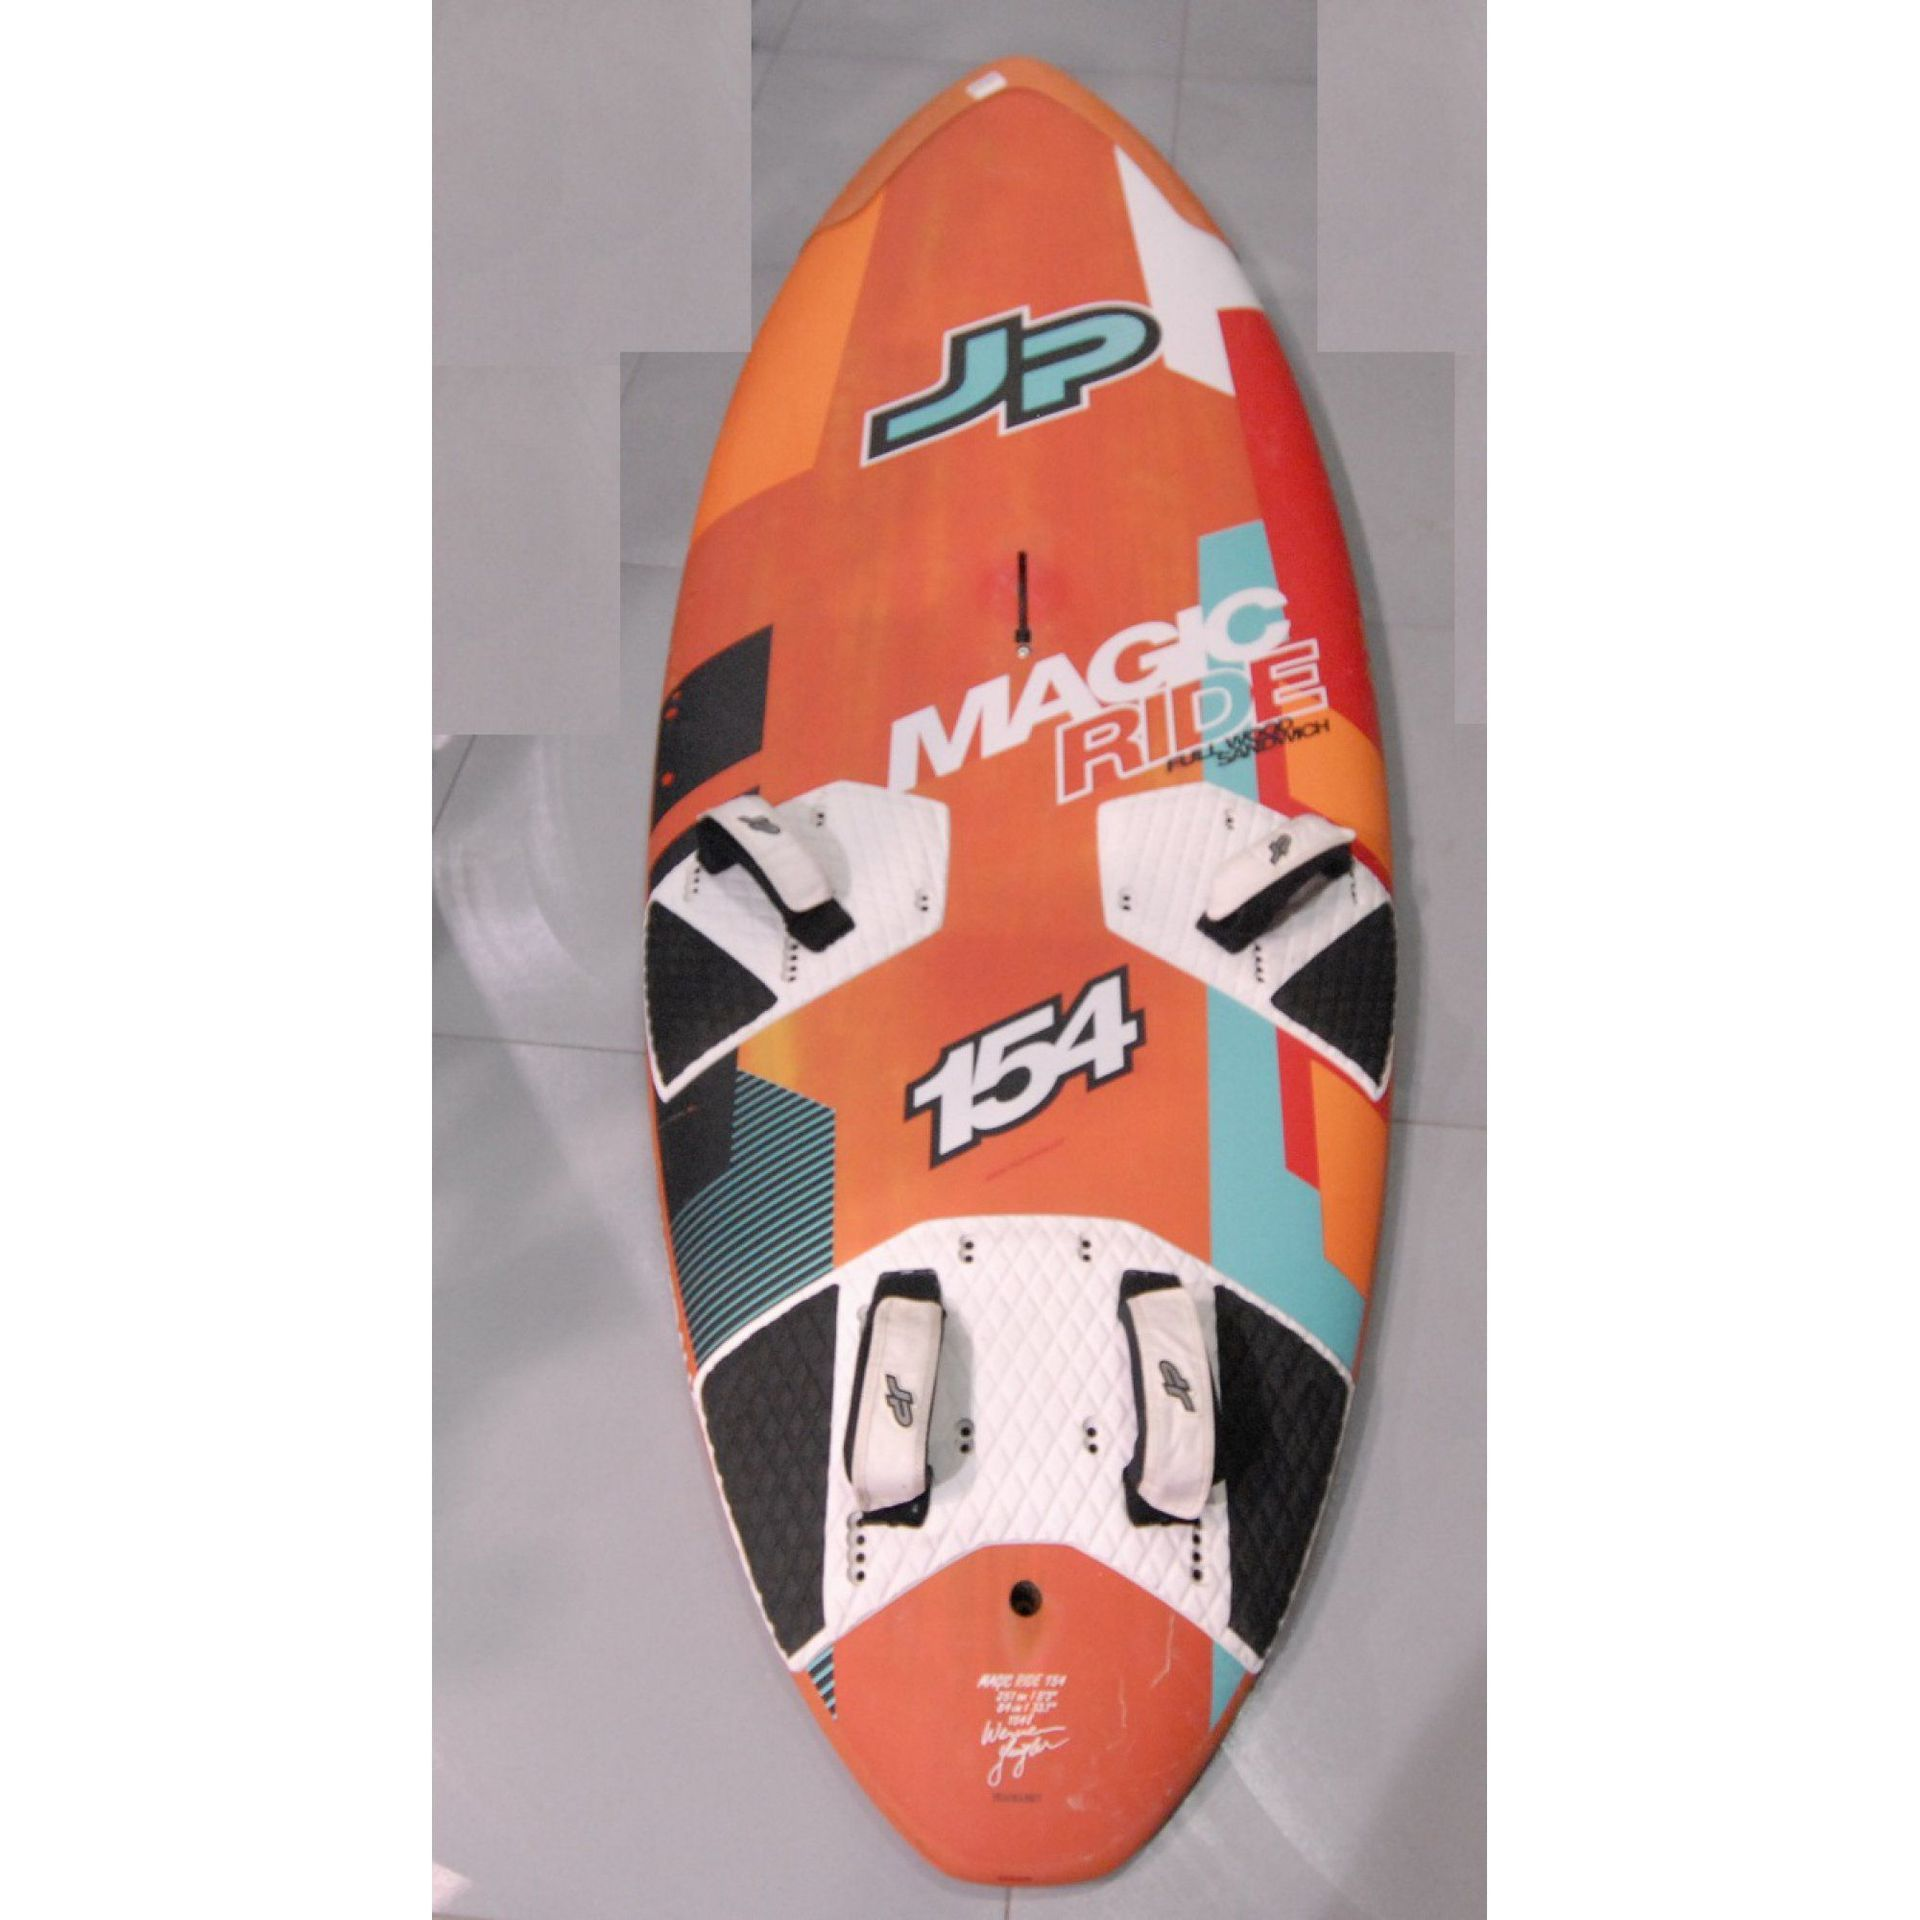 DESKA JP MAGIC RIDE FWS 154 - UŻYWANA FREERIDE (1715401)